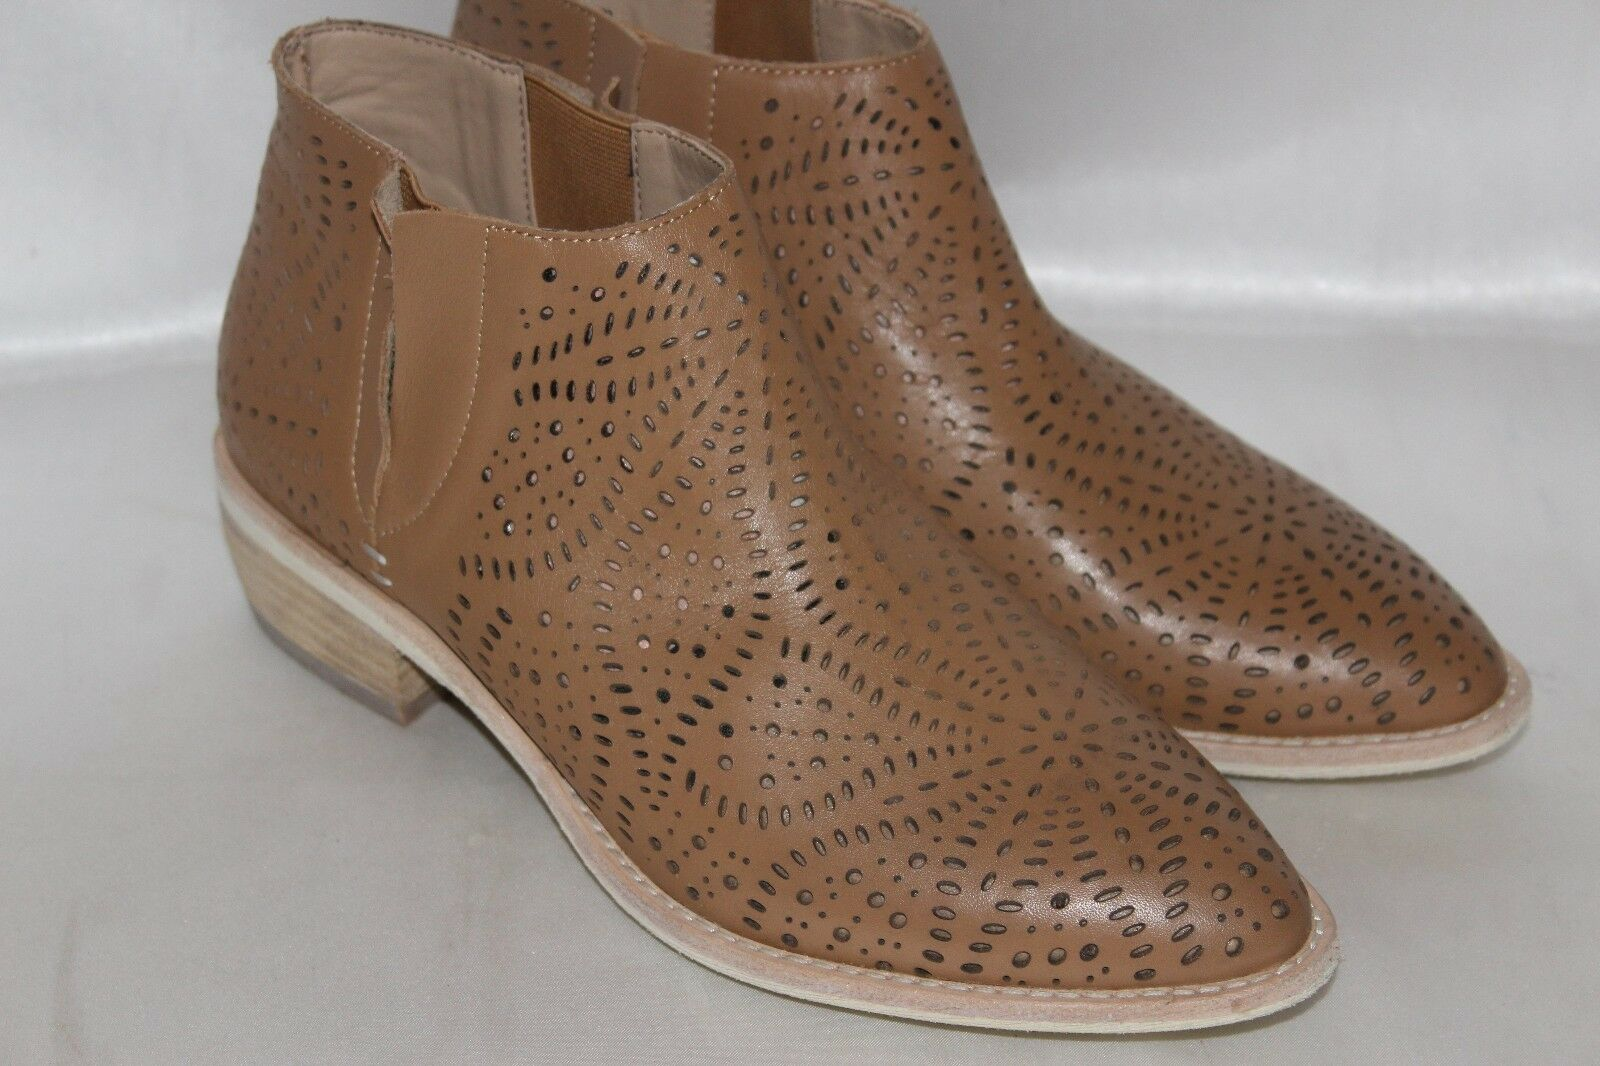 NEU  VANELI Perforated Saddle Leder Pointed Toe Ankle Stiefel Booties Sz 9